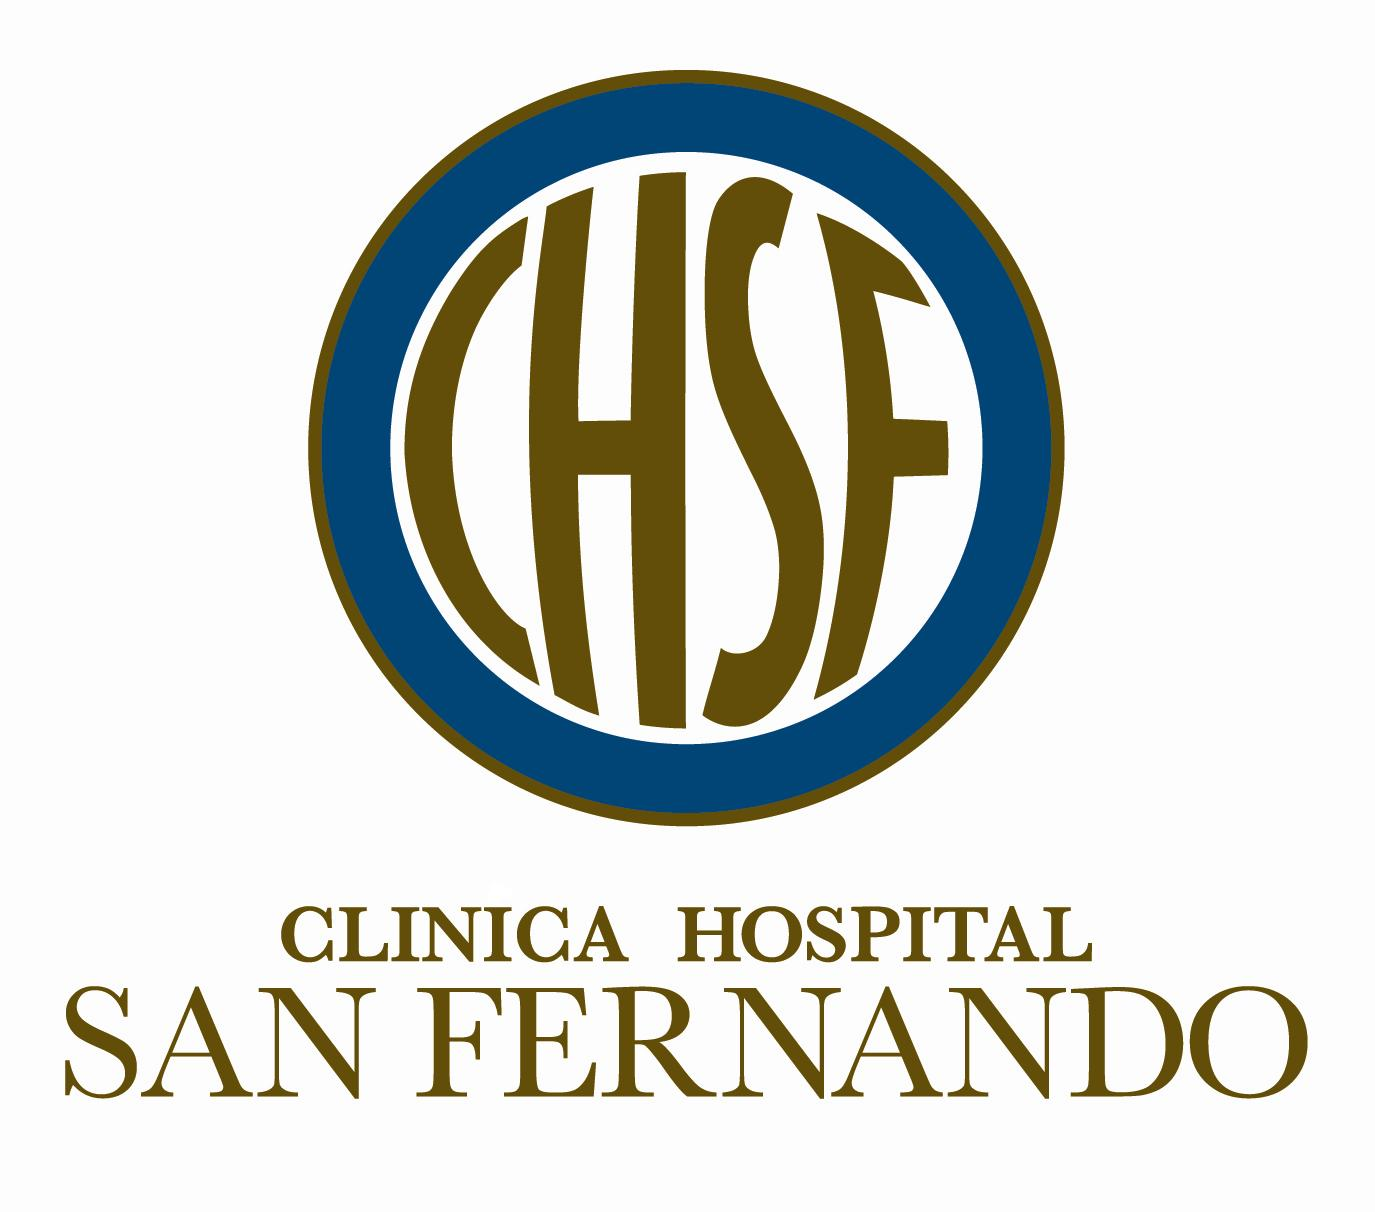 Clinica Hospital San Fernando